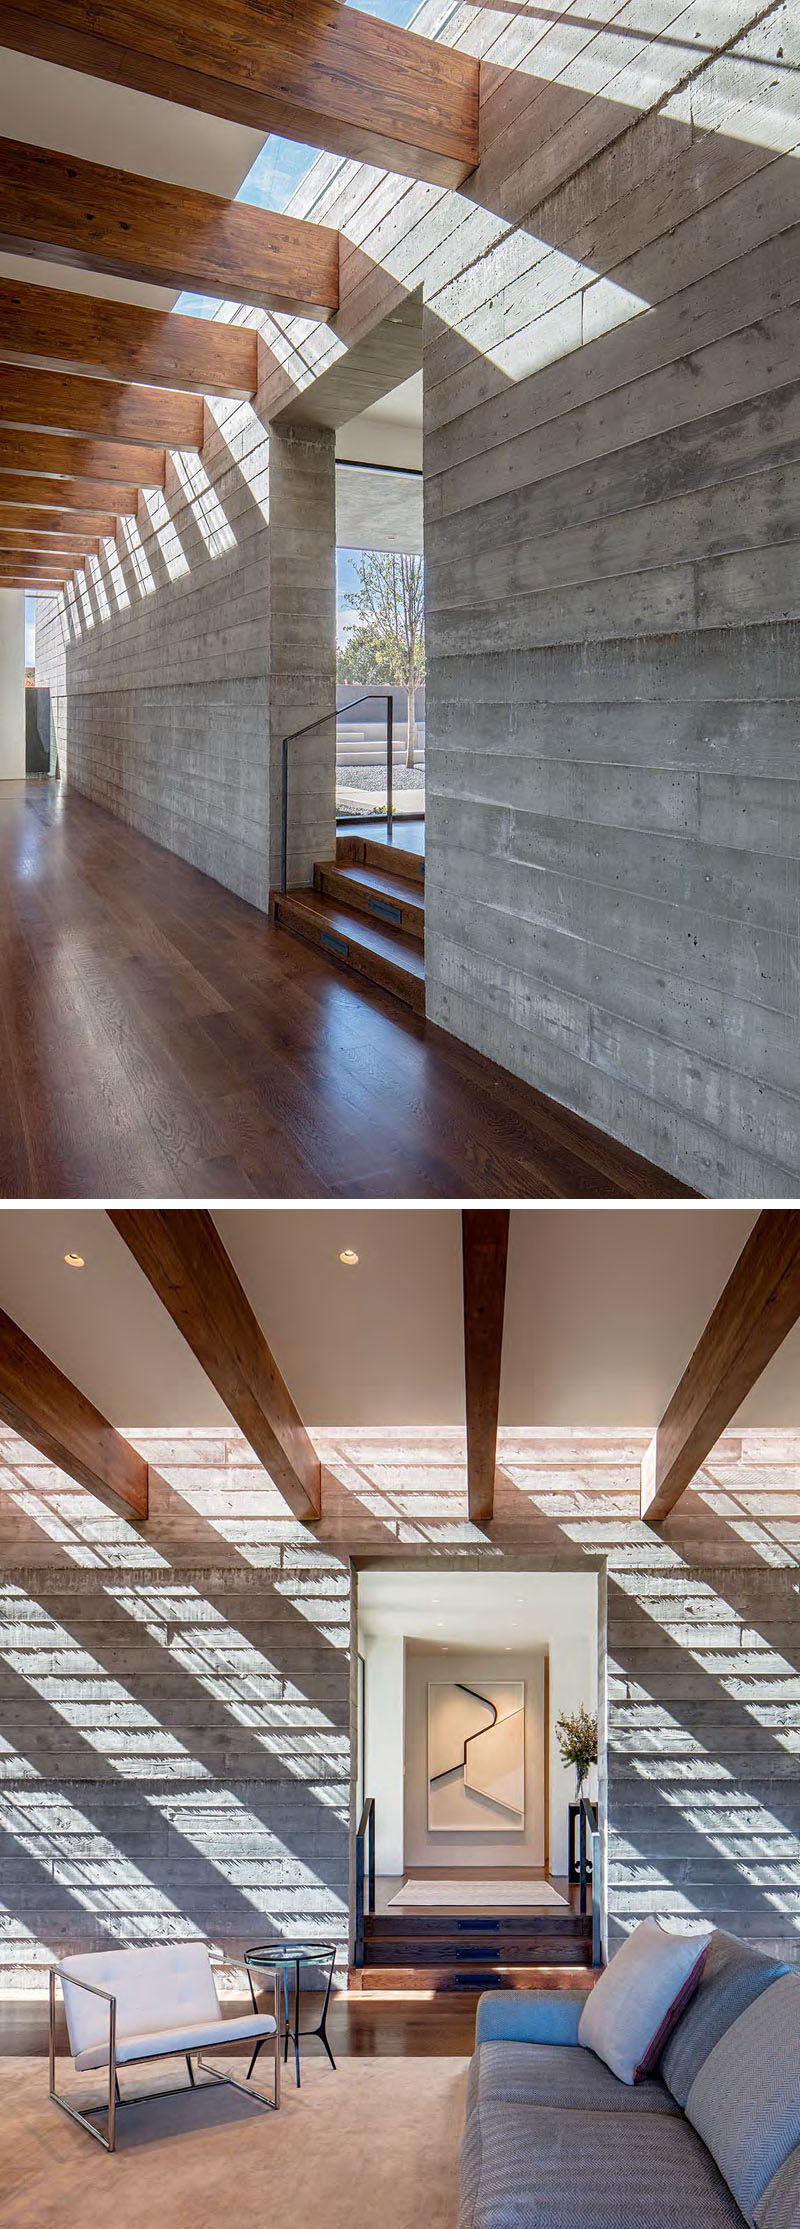 In this modern house, sunlight shines through a narrow skylight that runs the entire length of one of the walls (125ft), and casts shadows throughout the day.